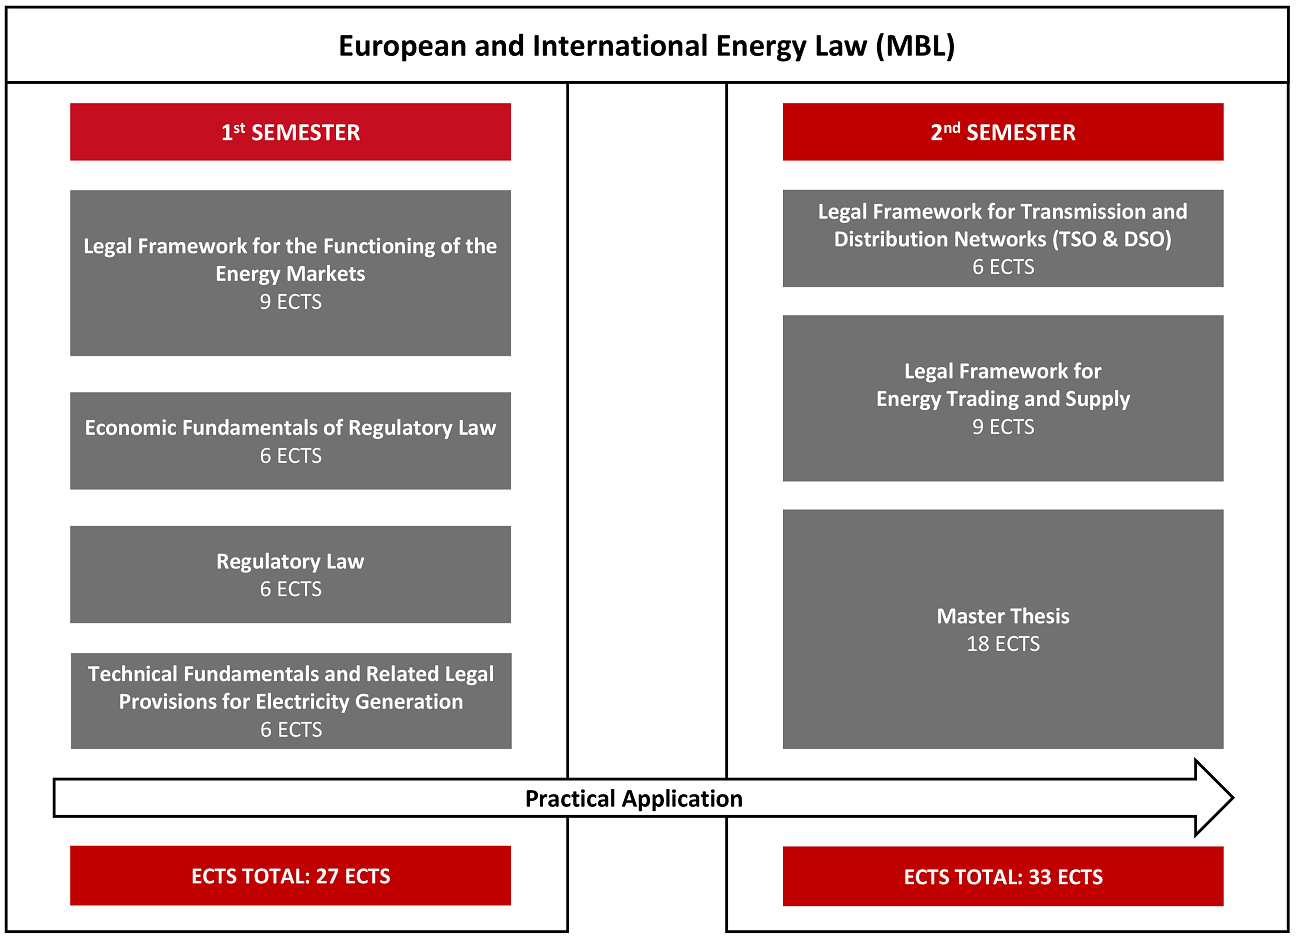 European and International Energy Law (MBL) European and International Energy Law MBL